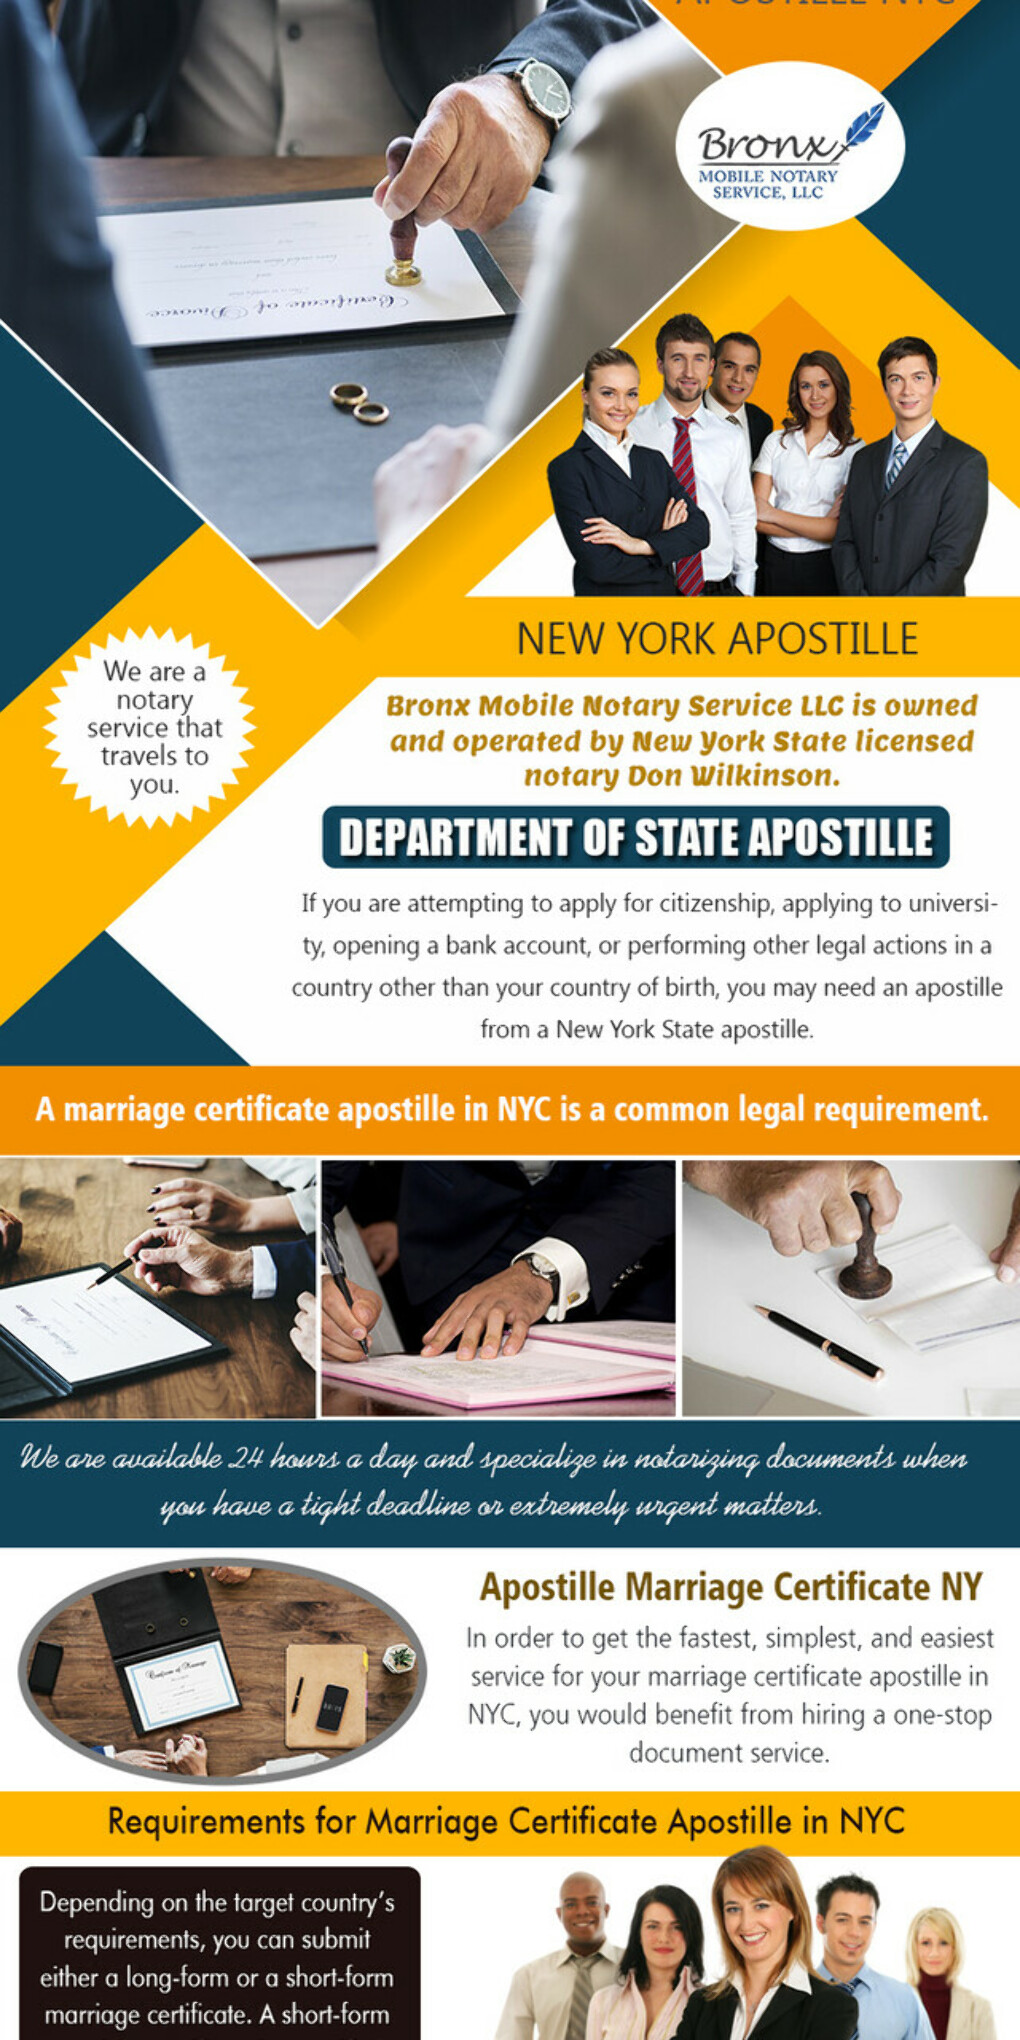 Apostille Marriage Certificate NY